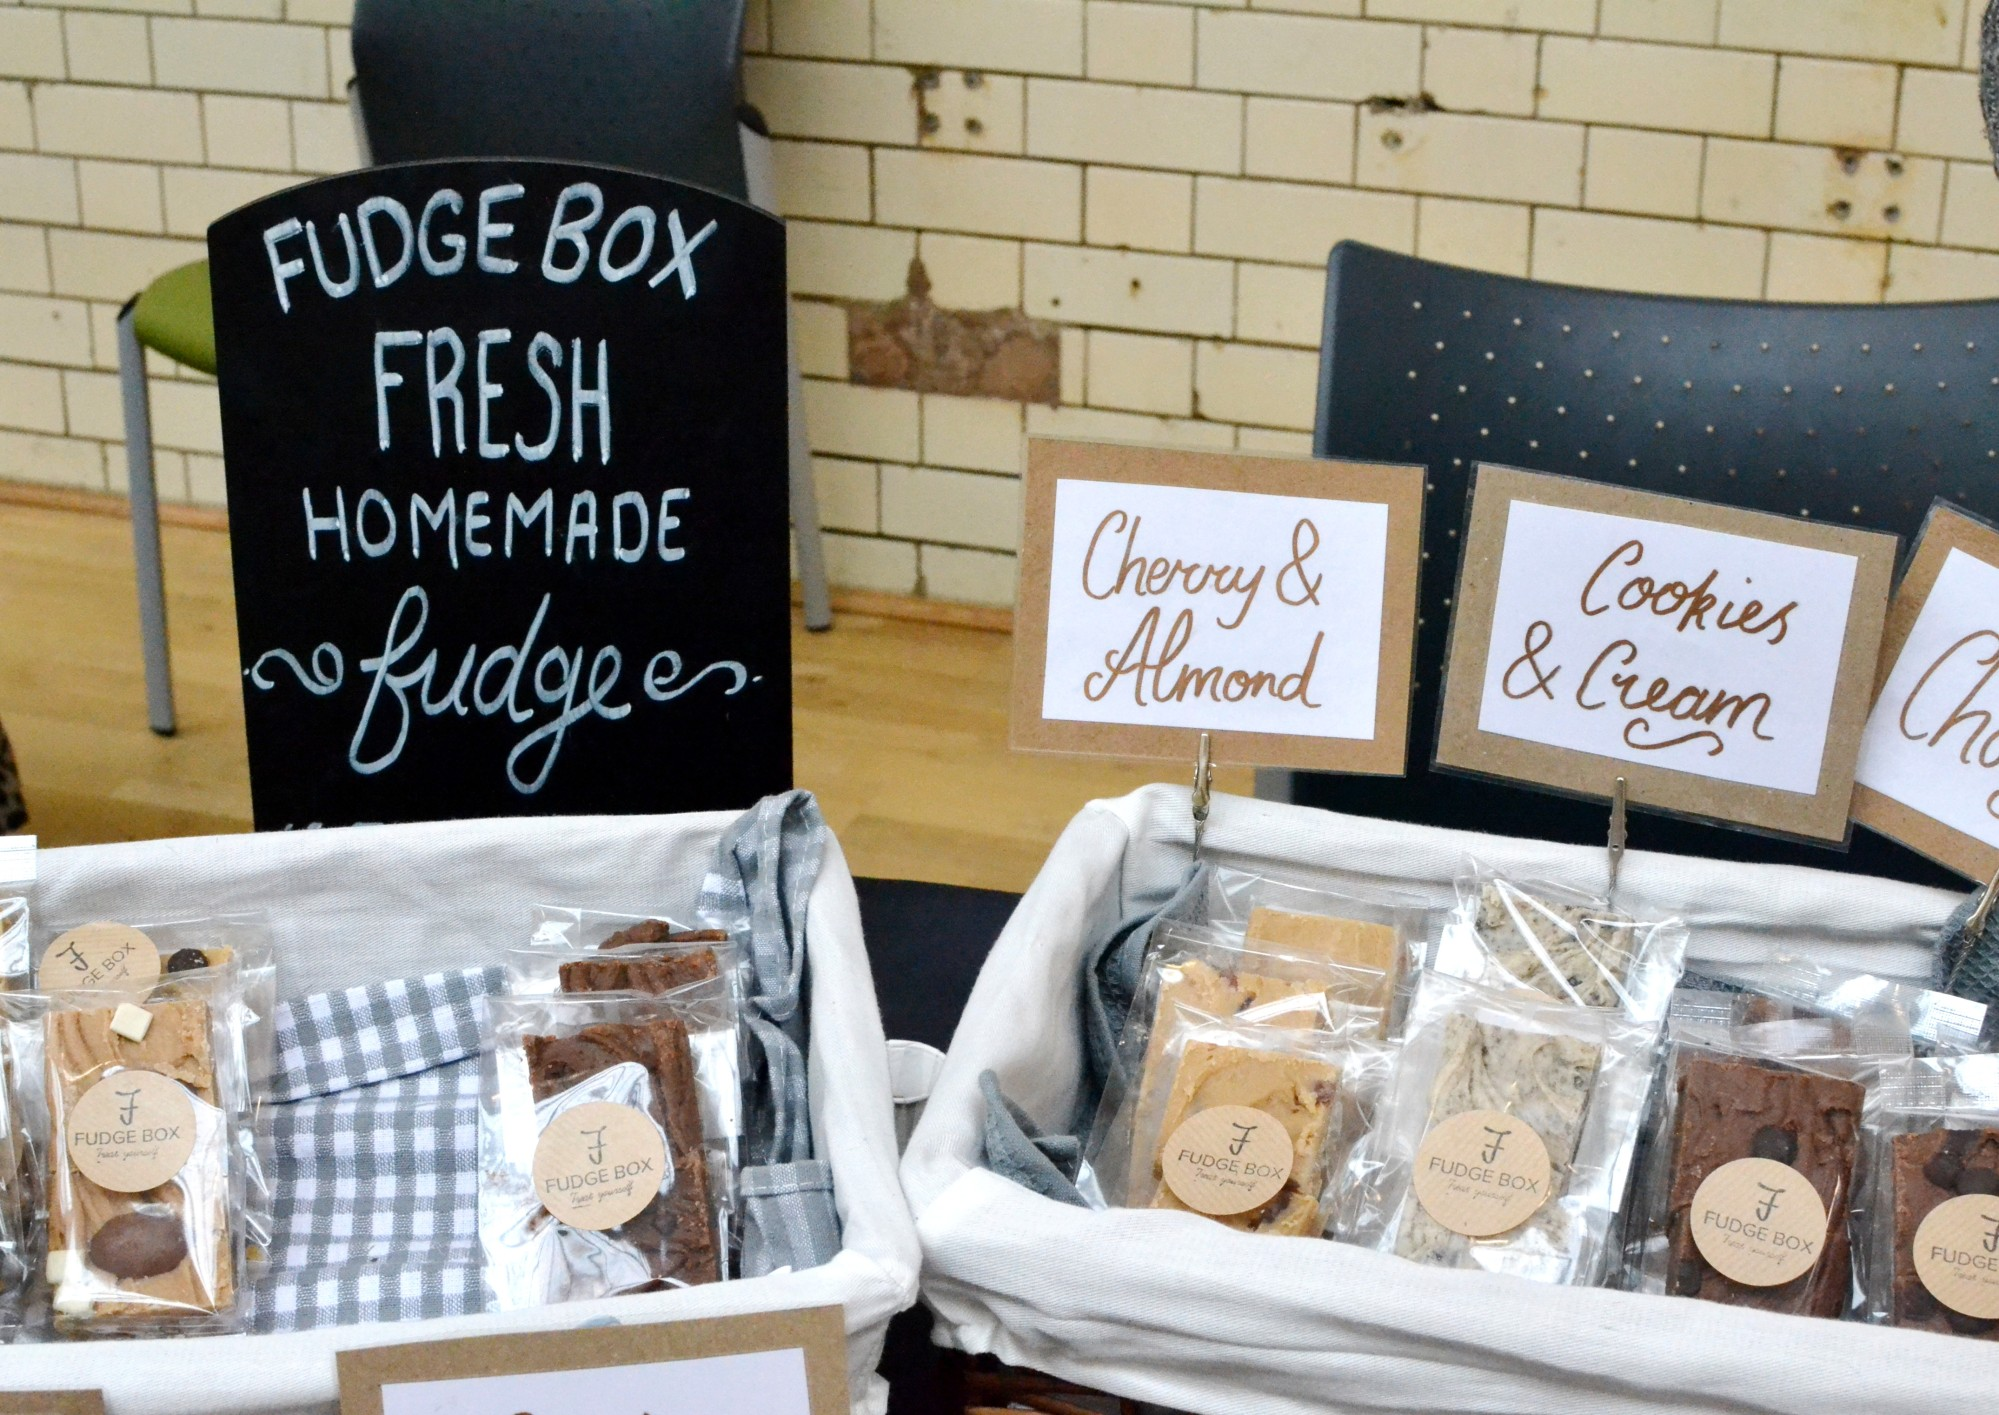 A range of fudge flavours from Fudgebox